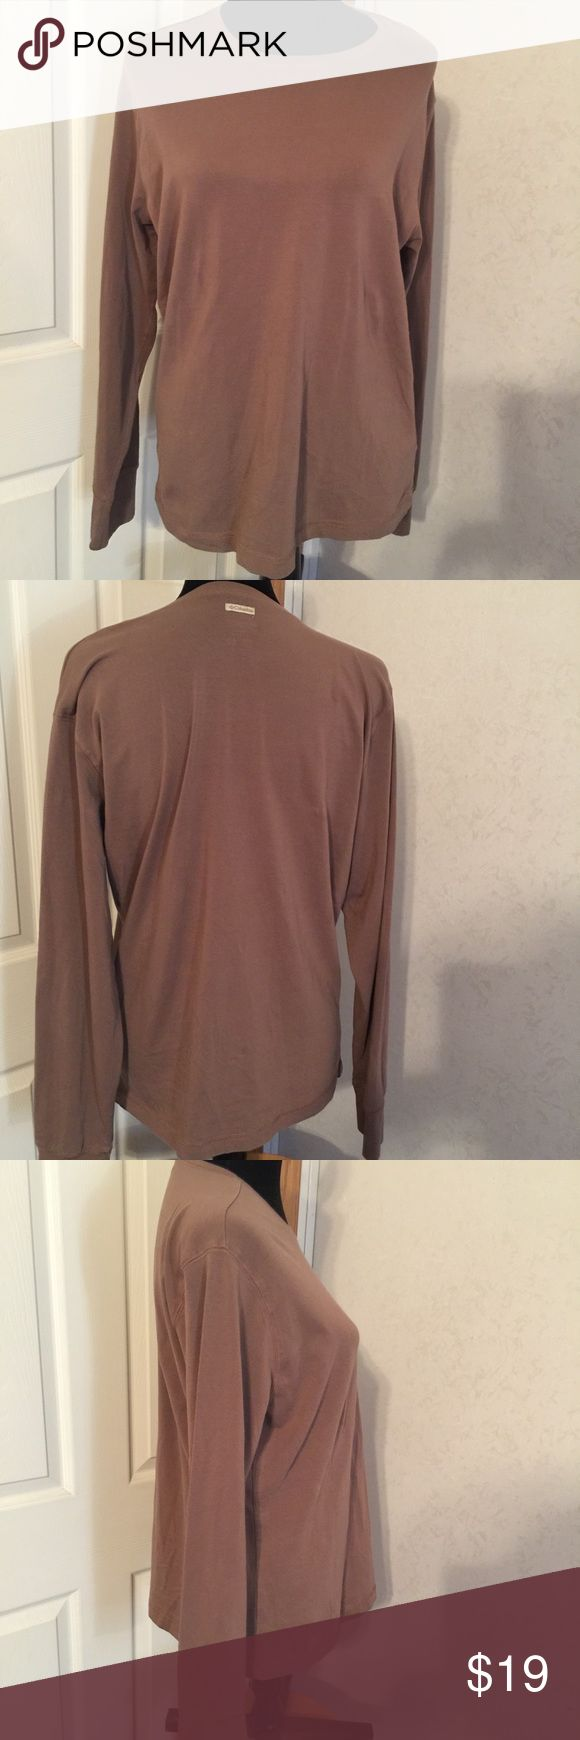 Columbia brown long sleeve top size XL. Columbia brown long sleeve top size XL. This is a great preowned top in good shape. Please view all pictures. Columbia Tops Tees - Long Sleeve